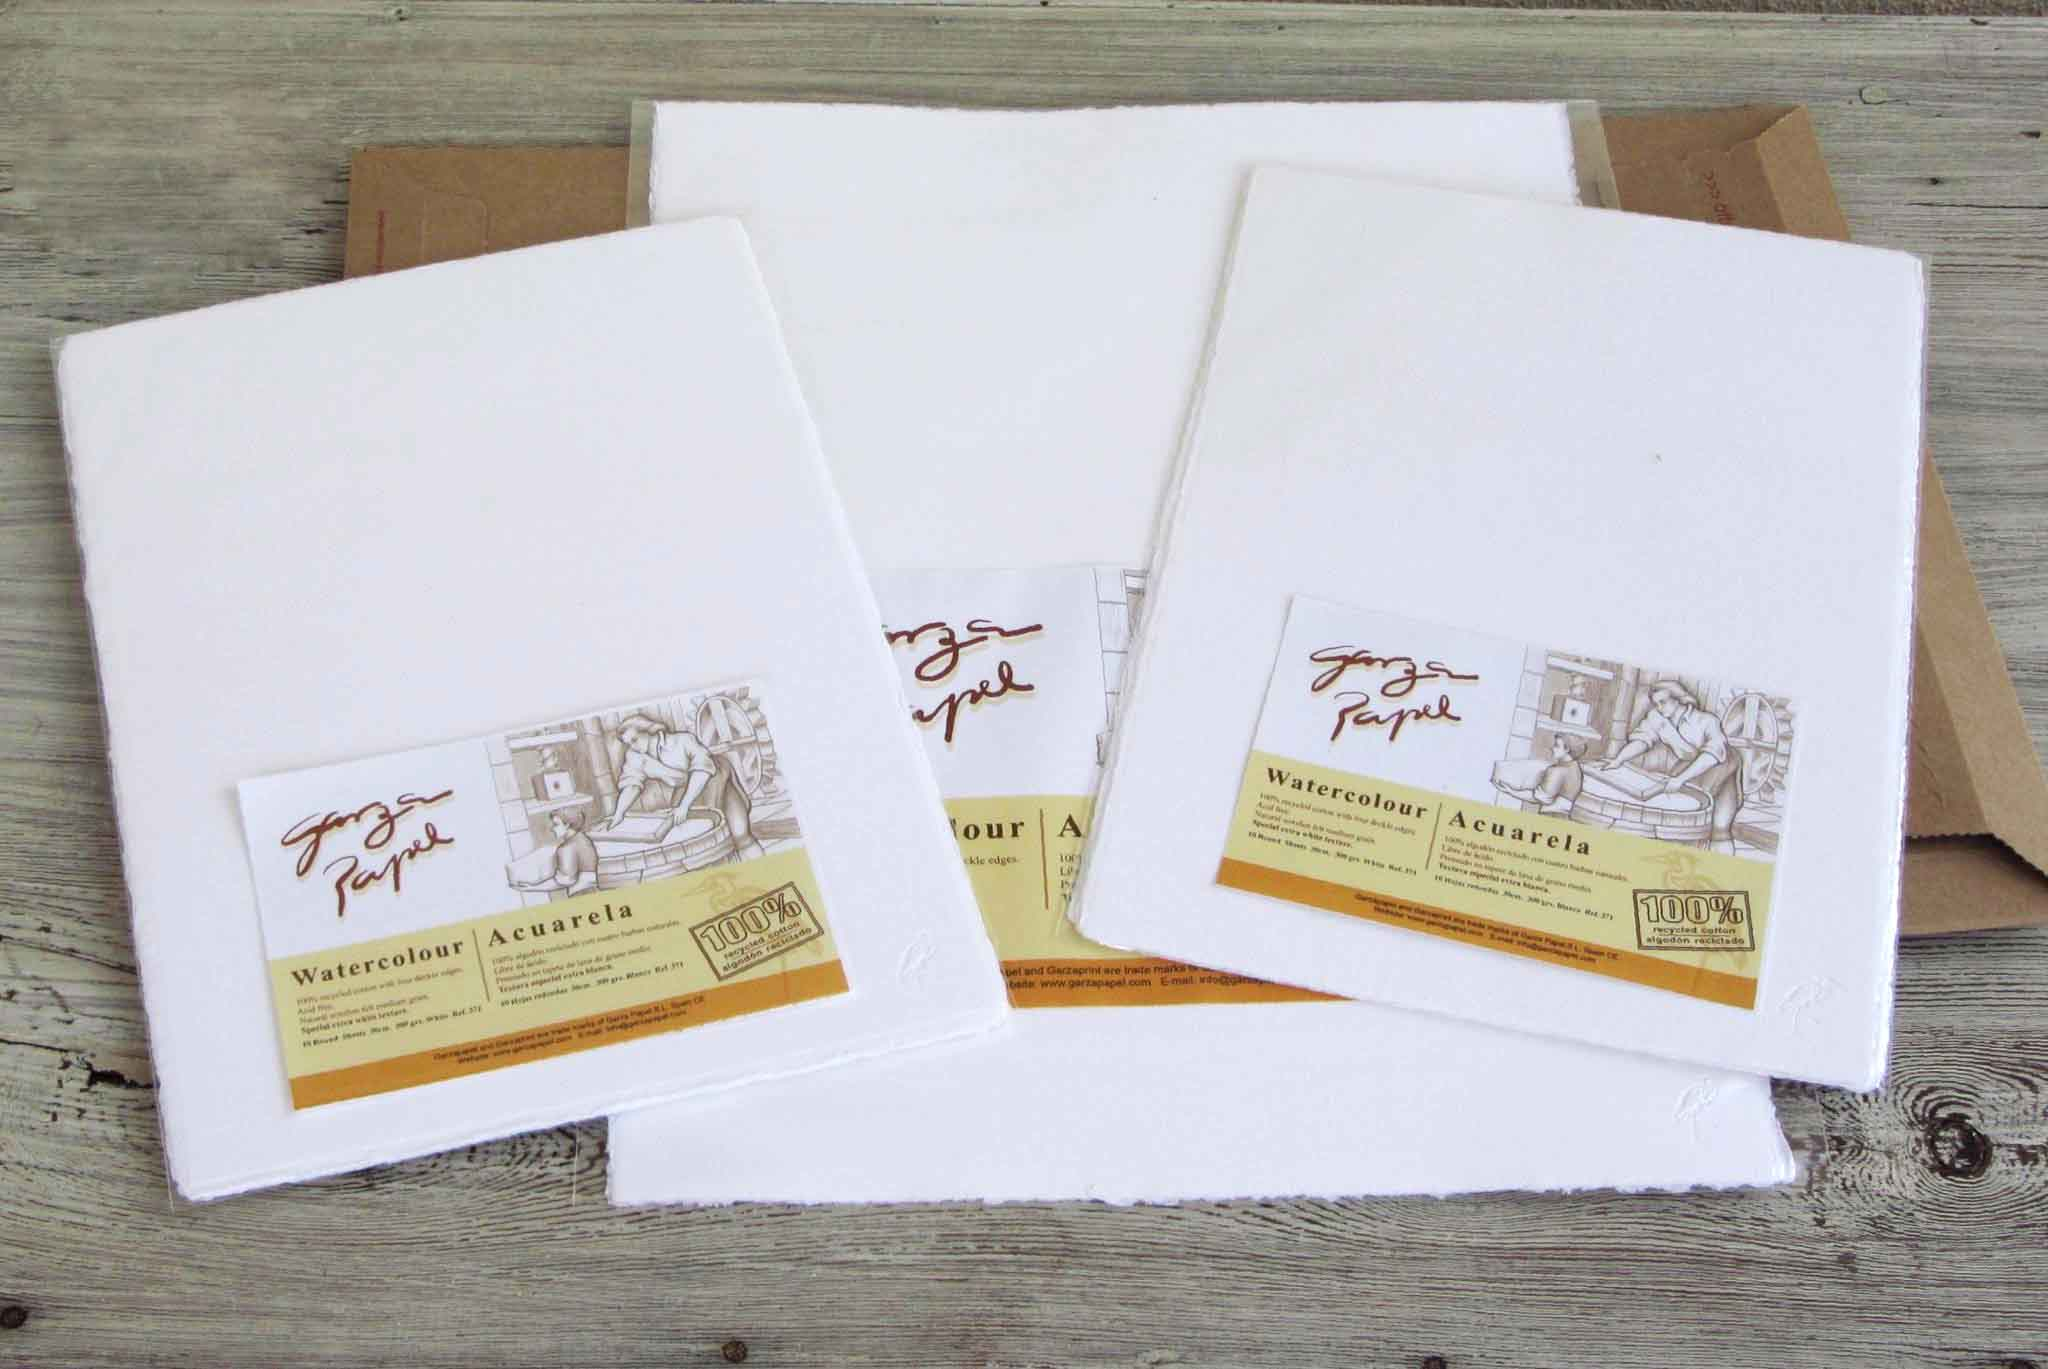 Paper for artists handmade painters